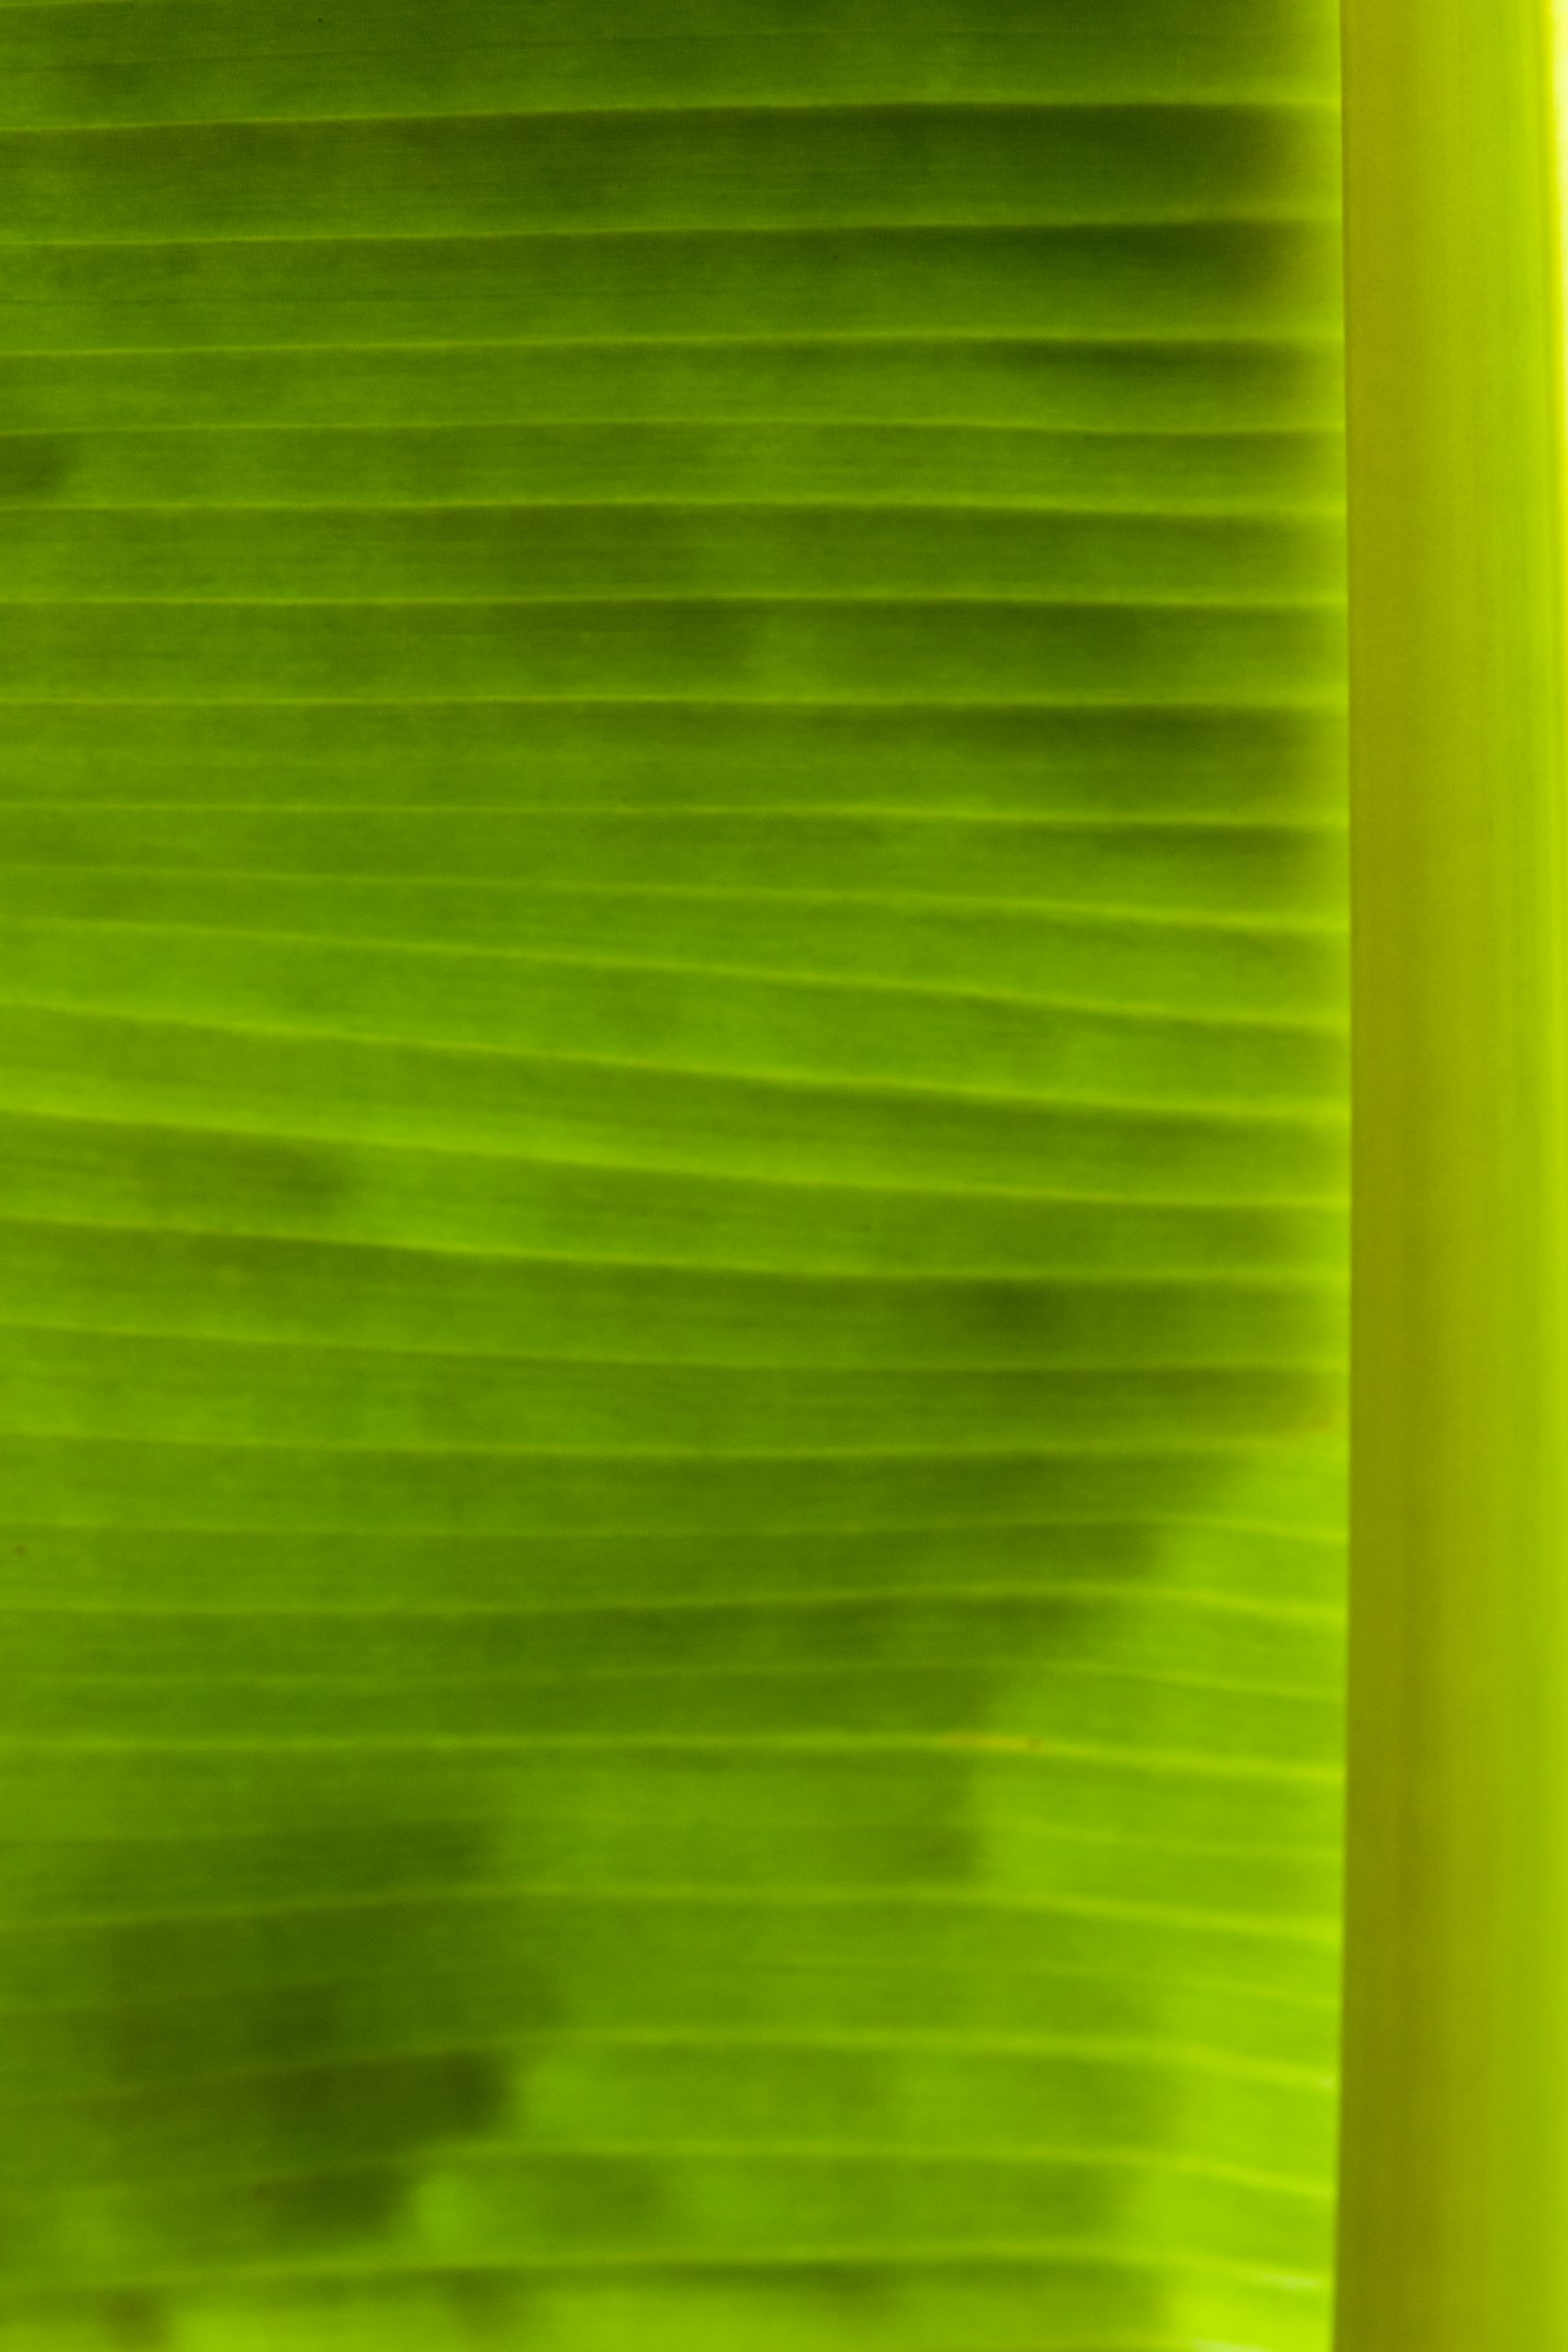 segment of banana leaf